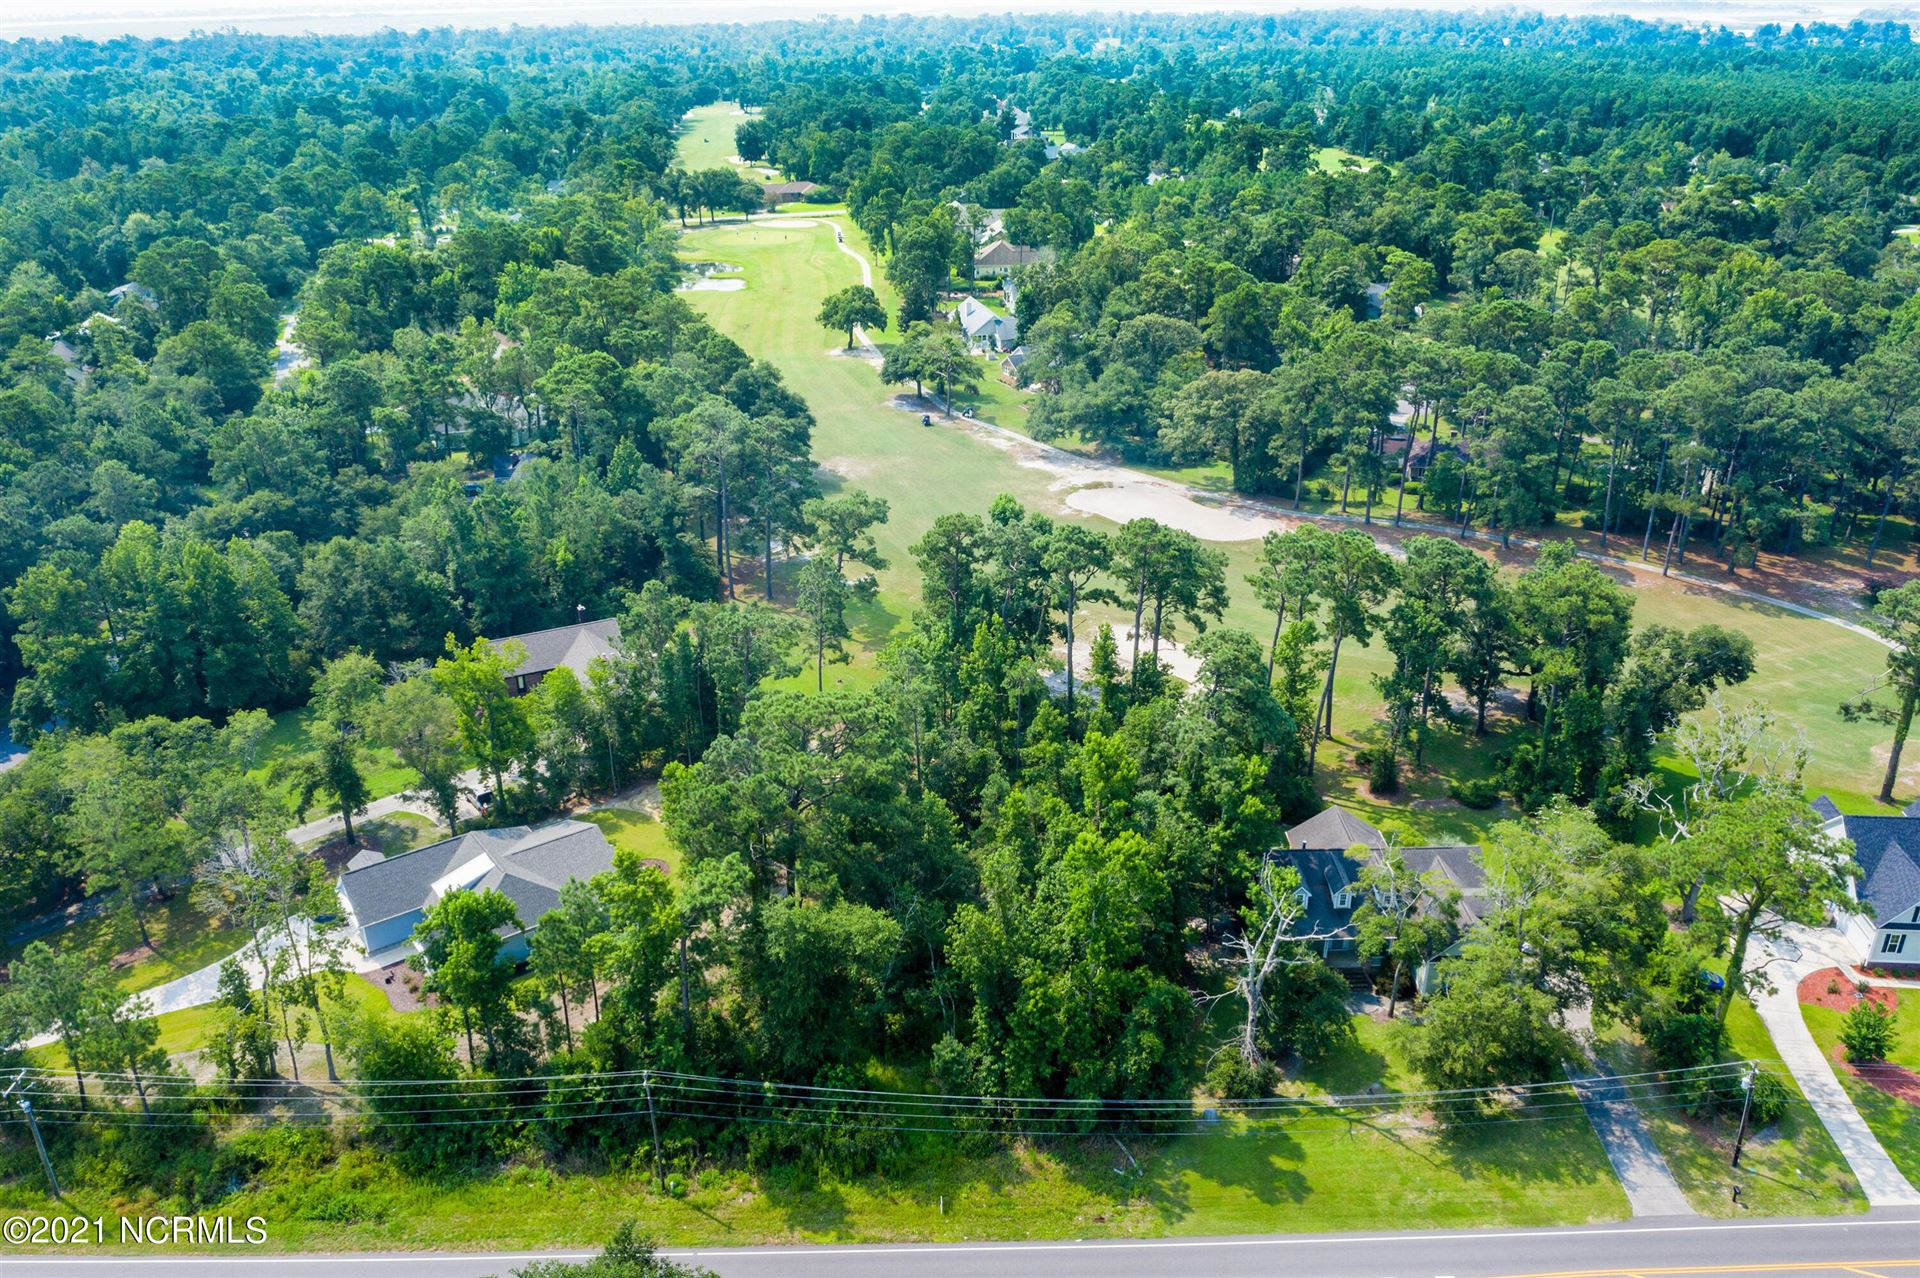 Photo of Lot 4 Olde Point/Country Club Road, Hampstead, NC 28443 (MLS # 100273254)